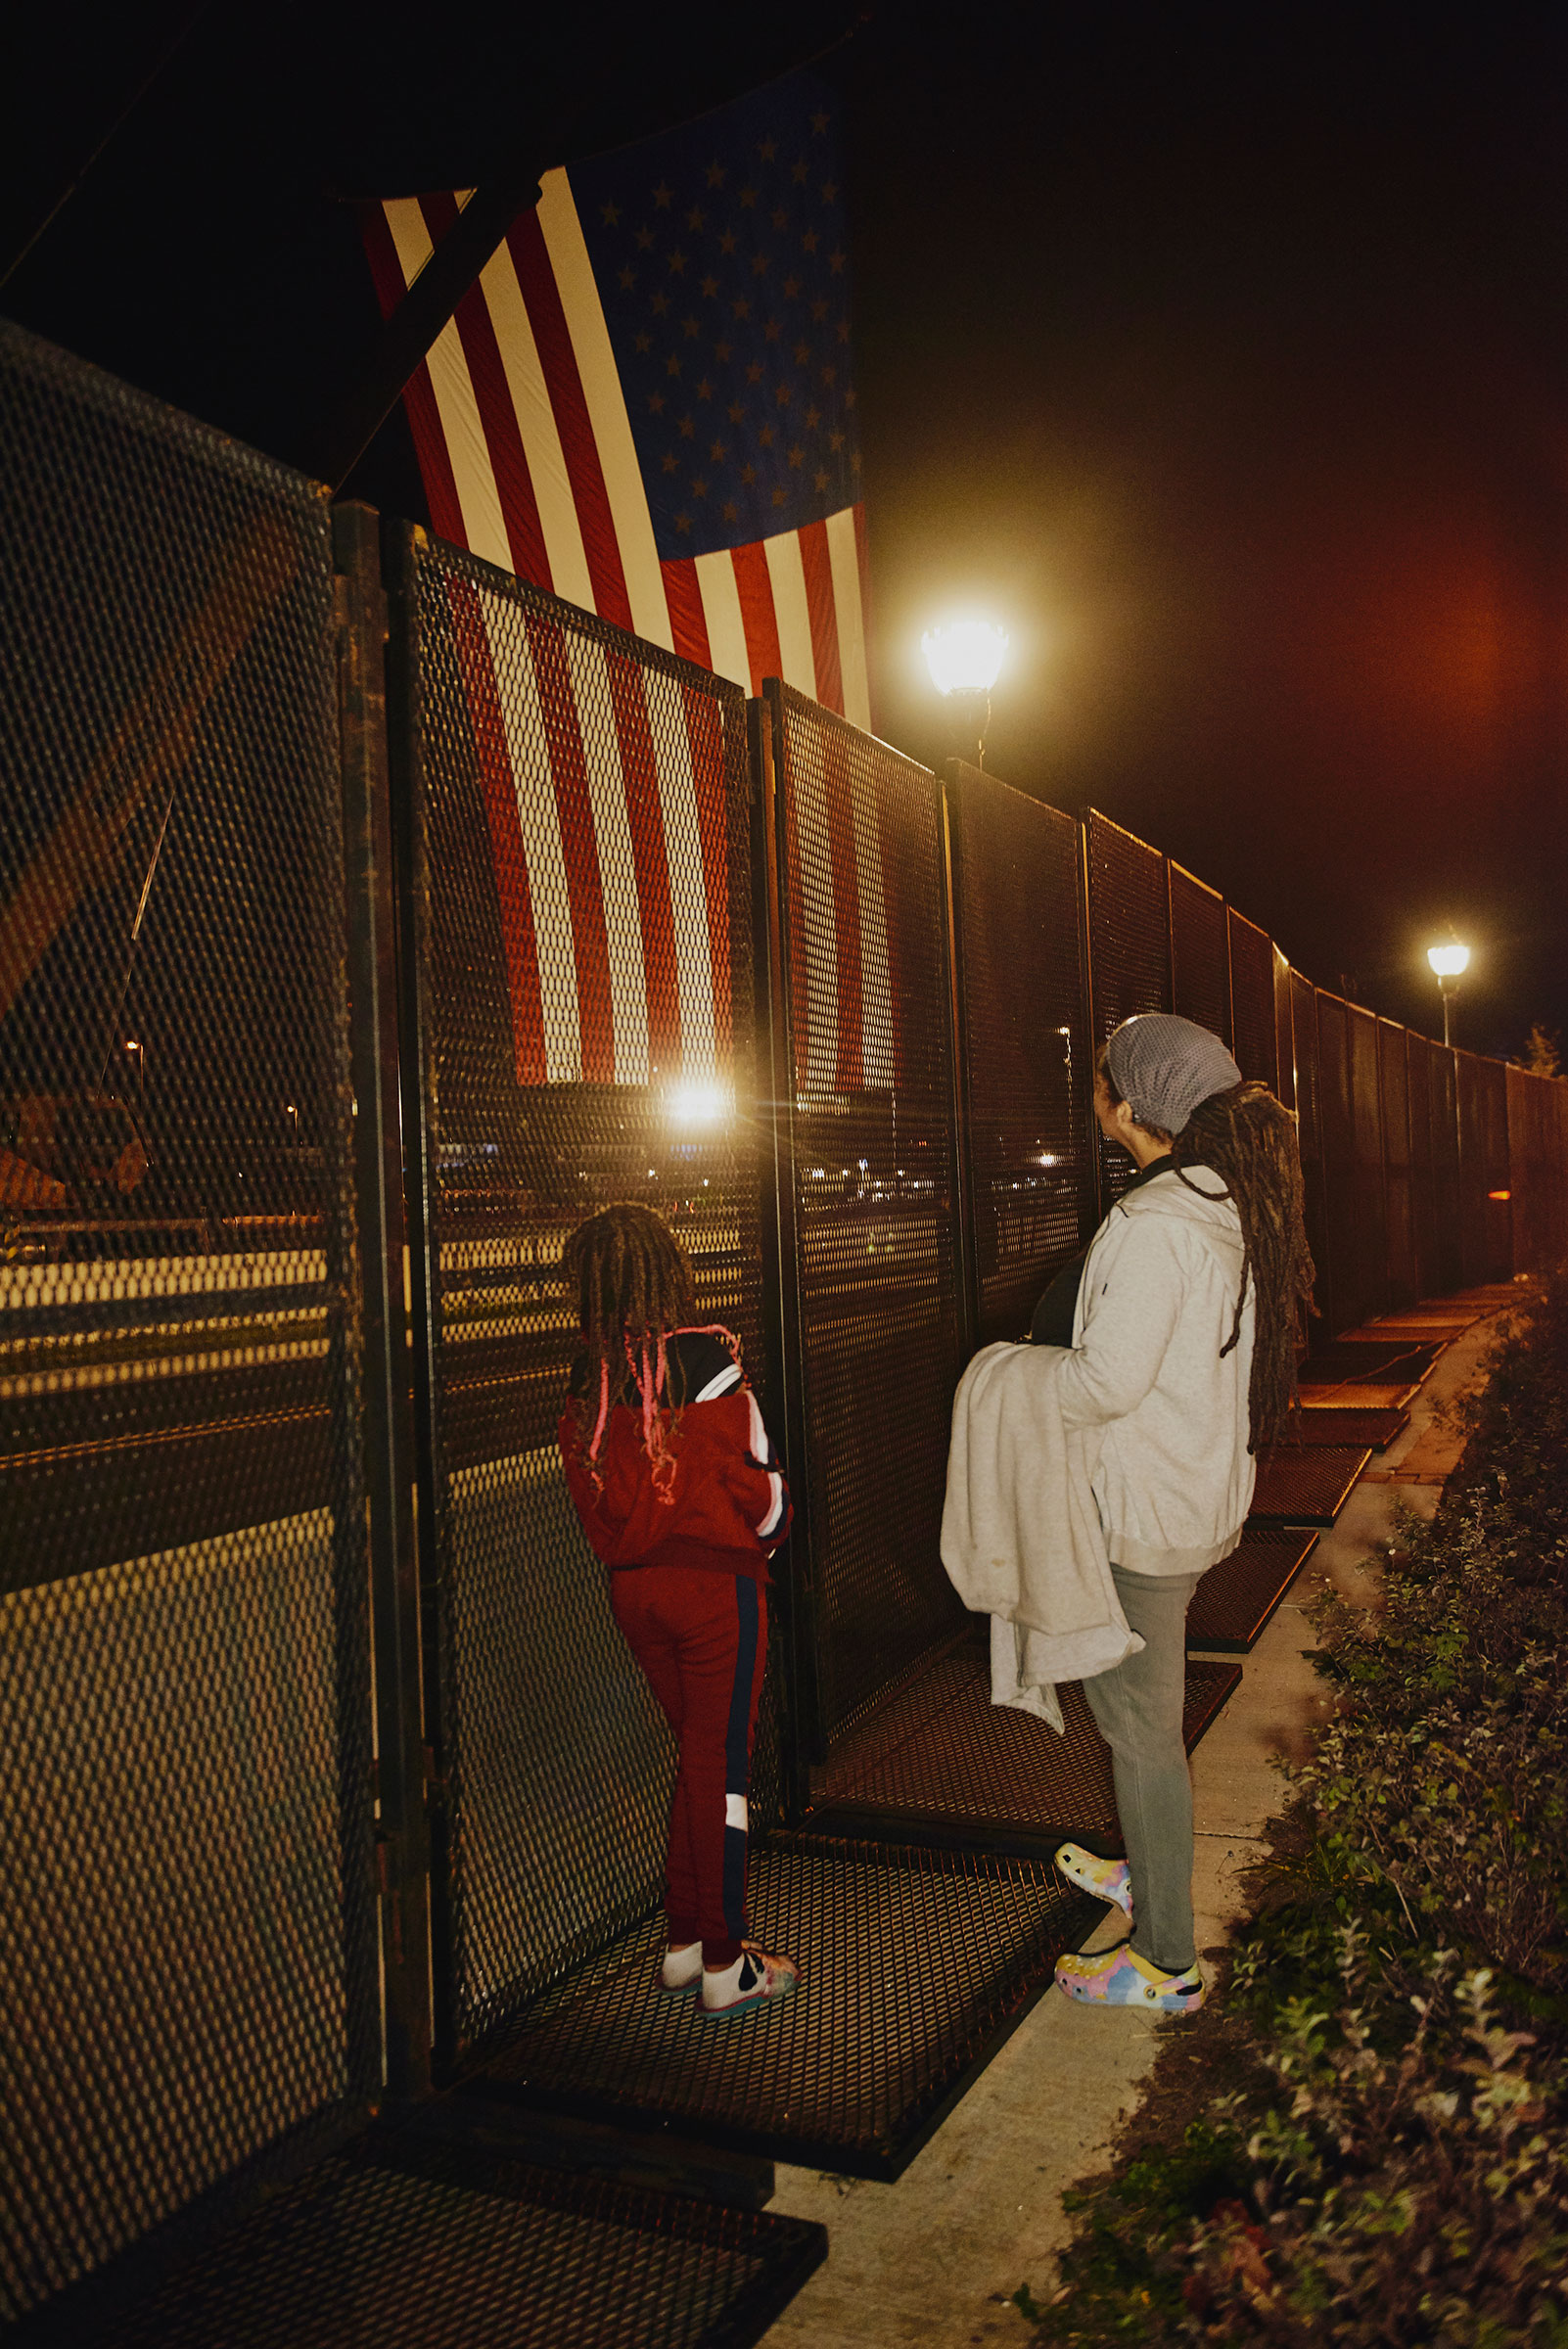 Nazaaha Hassan-El and Tacoma Austin look at an American flag on the other side of the partition fence that was set up around Vice President Joe Biden's election event at the Chase Center in Wilmington, on Nov. 3.